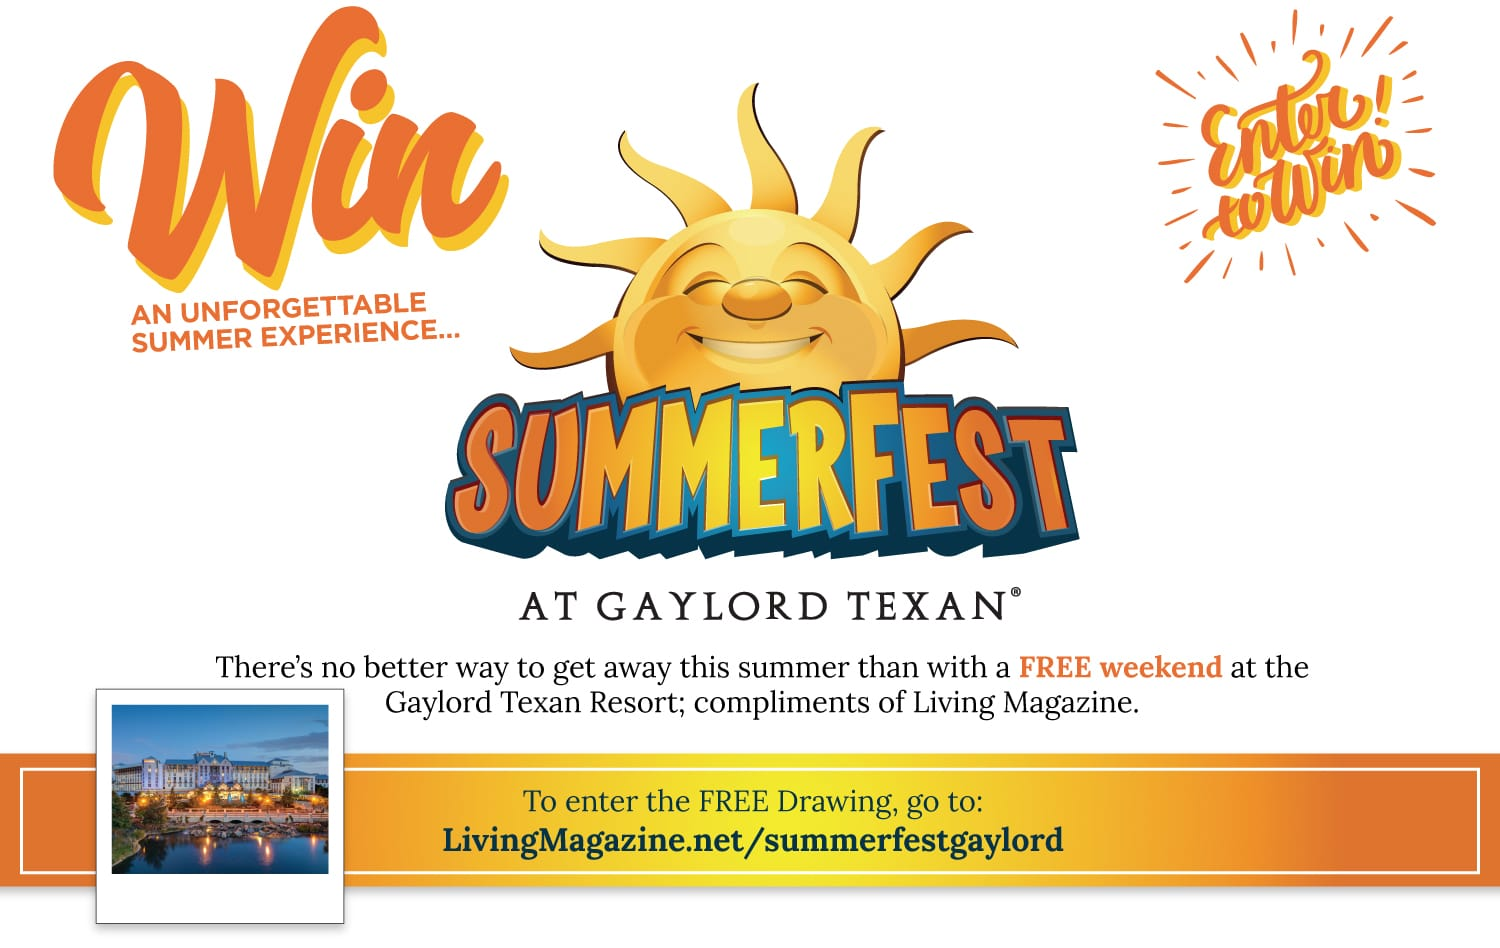 Living Magazine giveaway gaylord texan